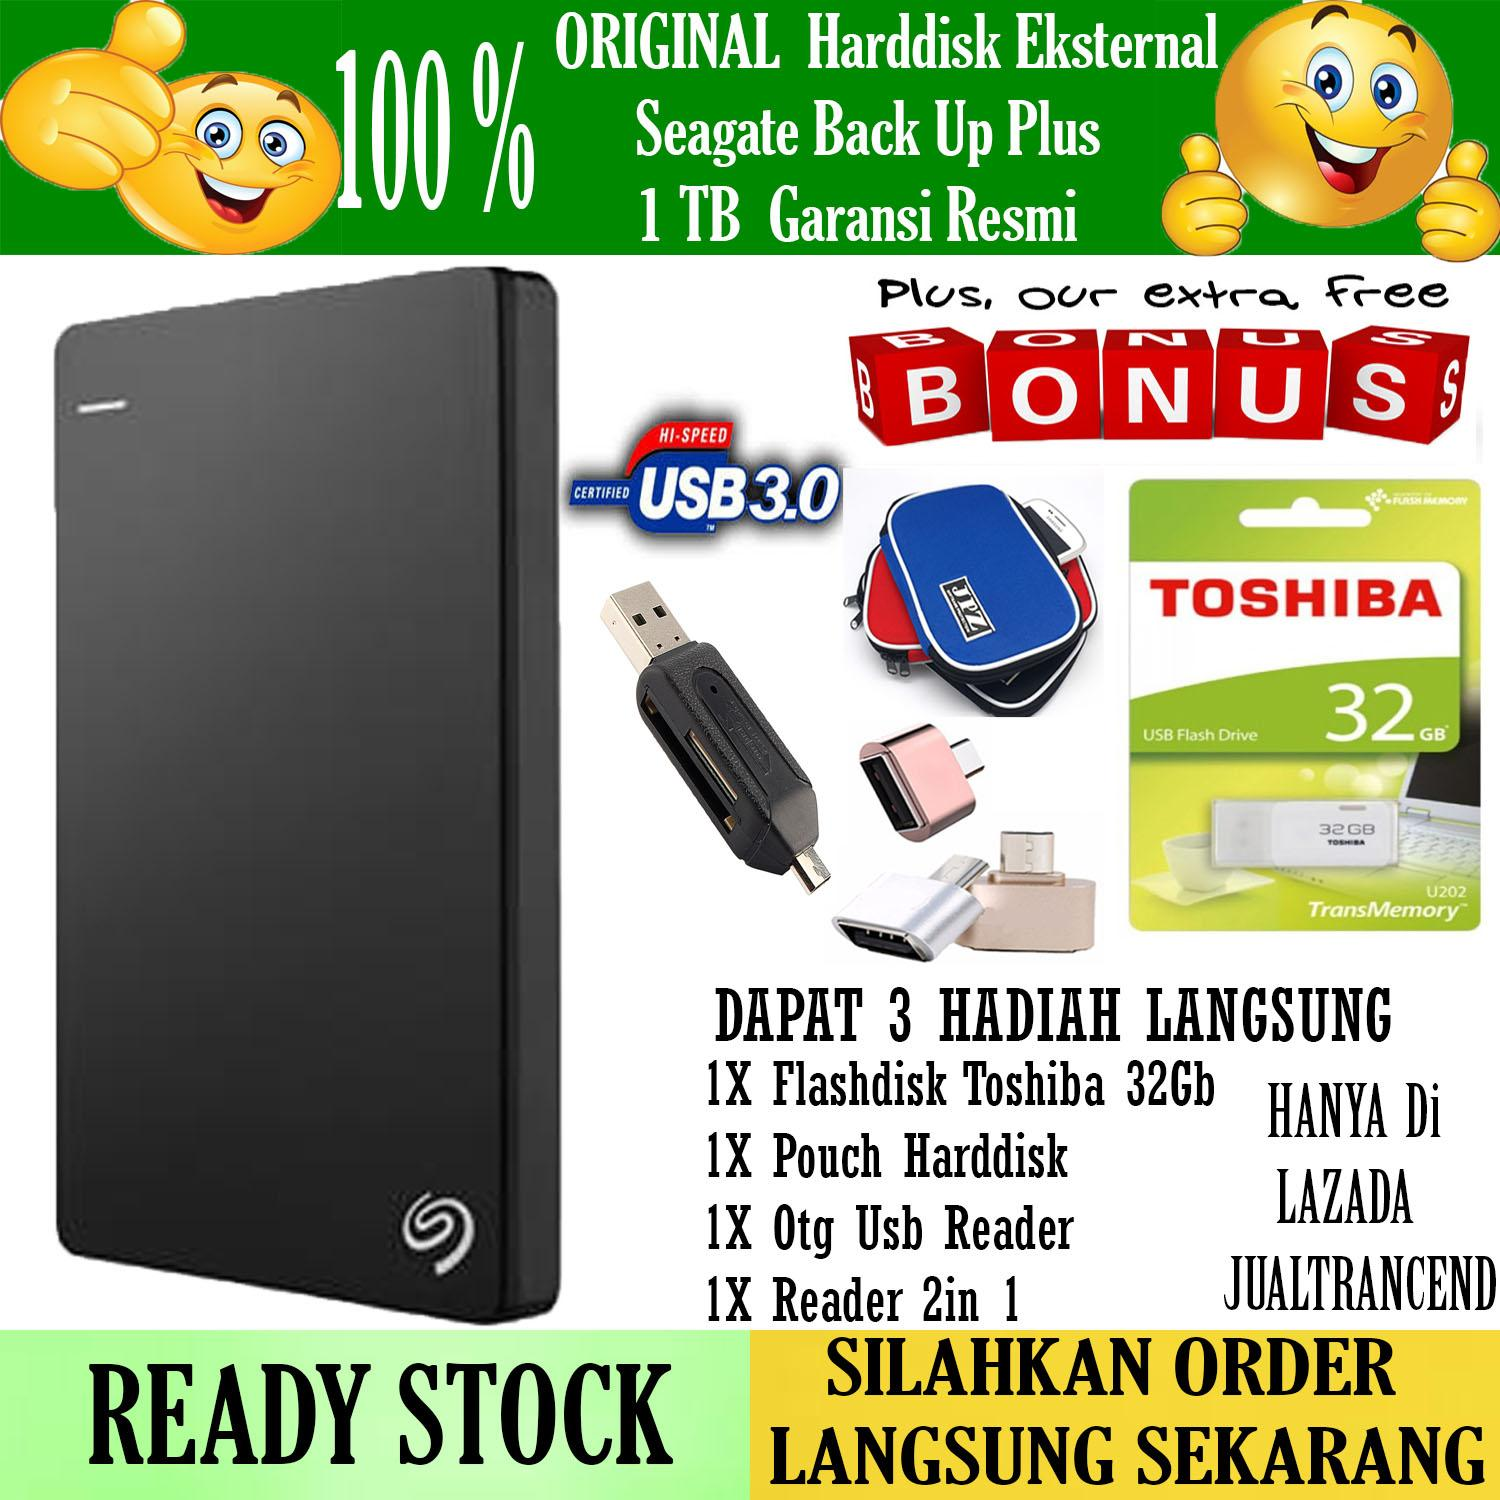 Seagate Backup Plus Slim 1TB - HDD - HD - Hardisk External 2.5 - Hitam + Gratis  Flashdisk 32Gb Toshiba 2.0 + Pouch Harddisk + Usb Otg Android + Reader 2in 1